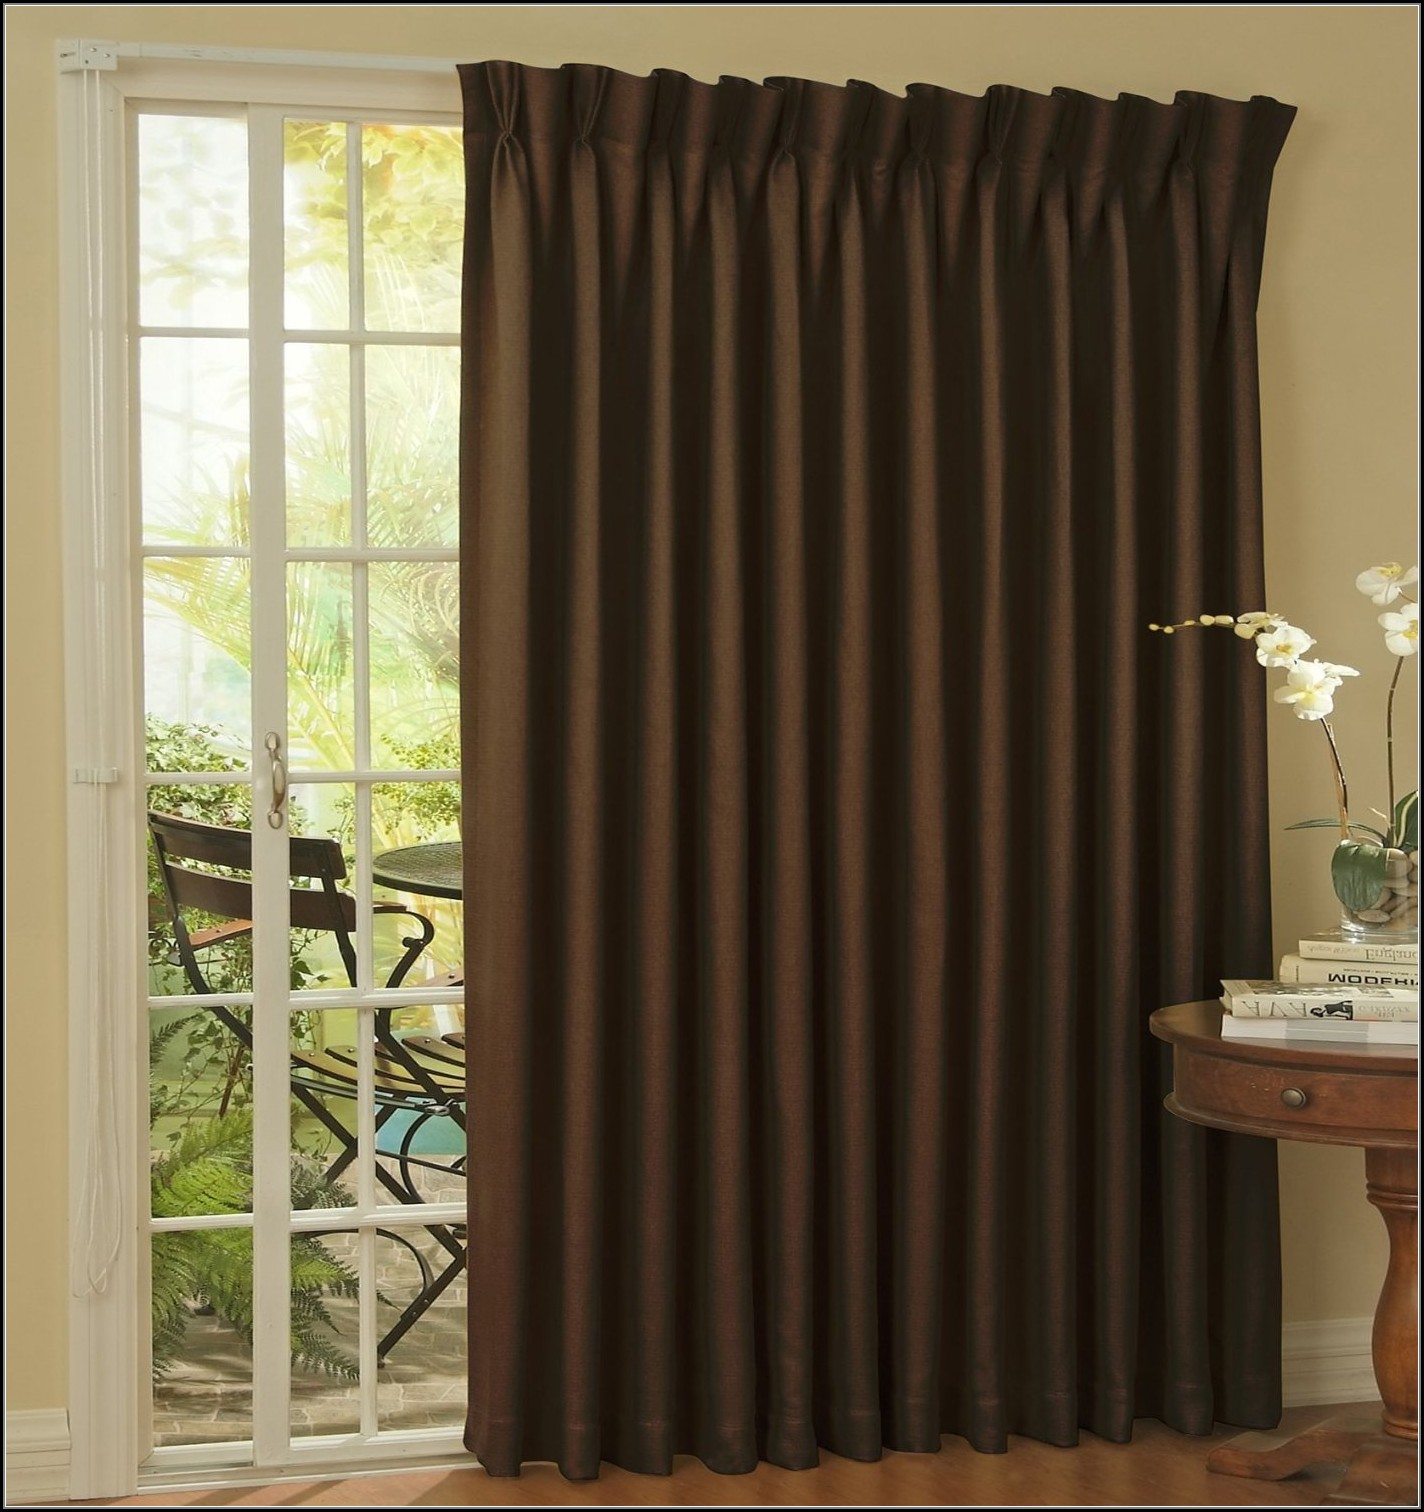 Eclipse Patio Door Curtain Panel